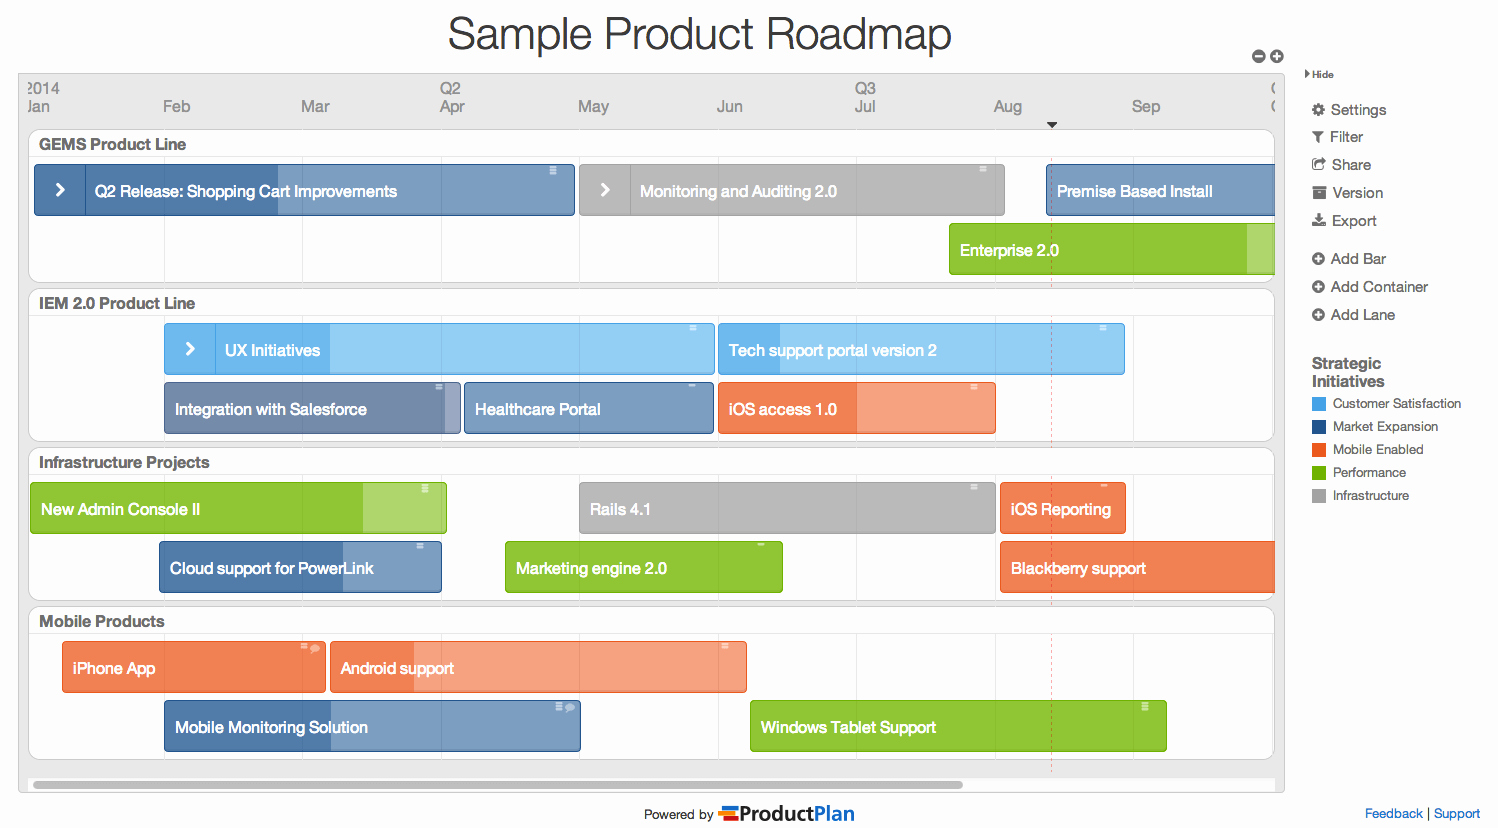 Roadmap Template Excel Free Download Lovely Product Roadmap Templates by Productplan